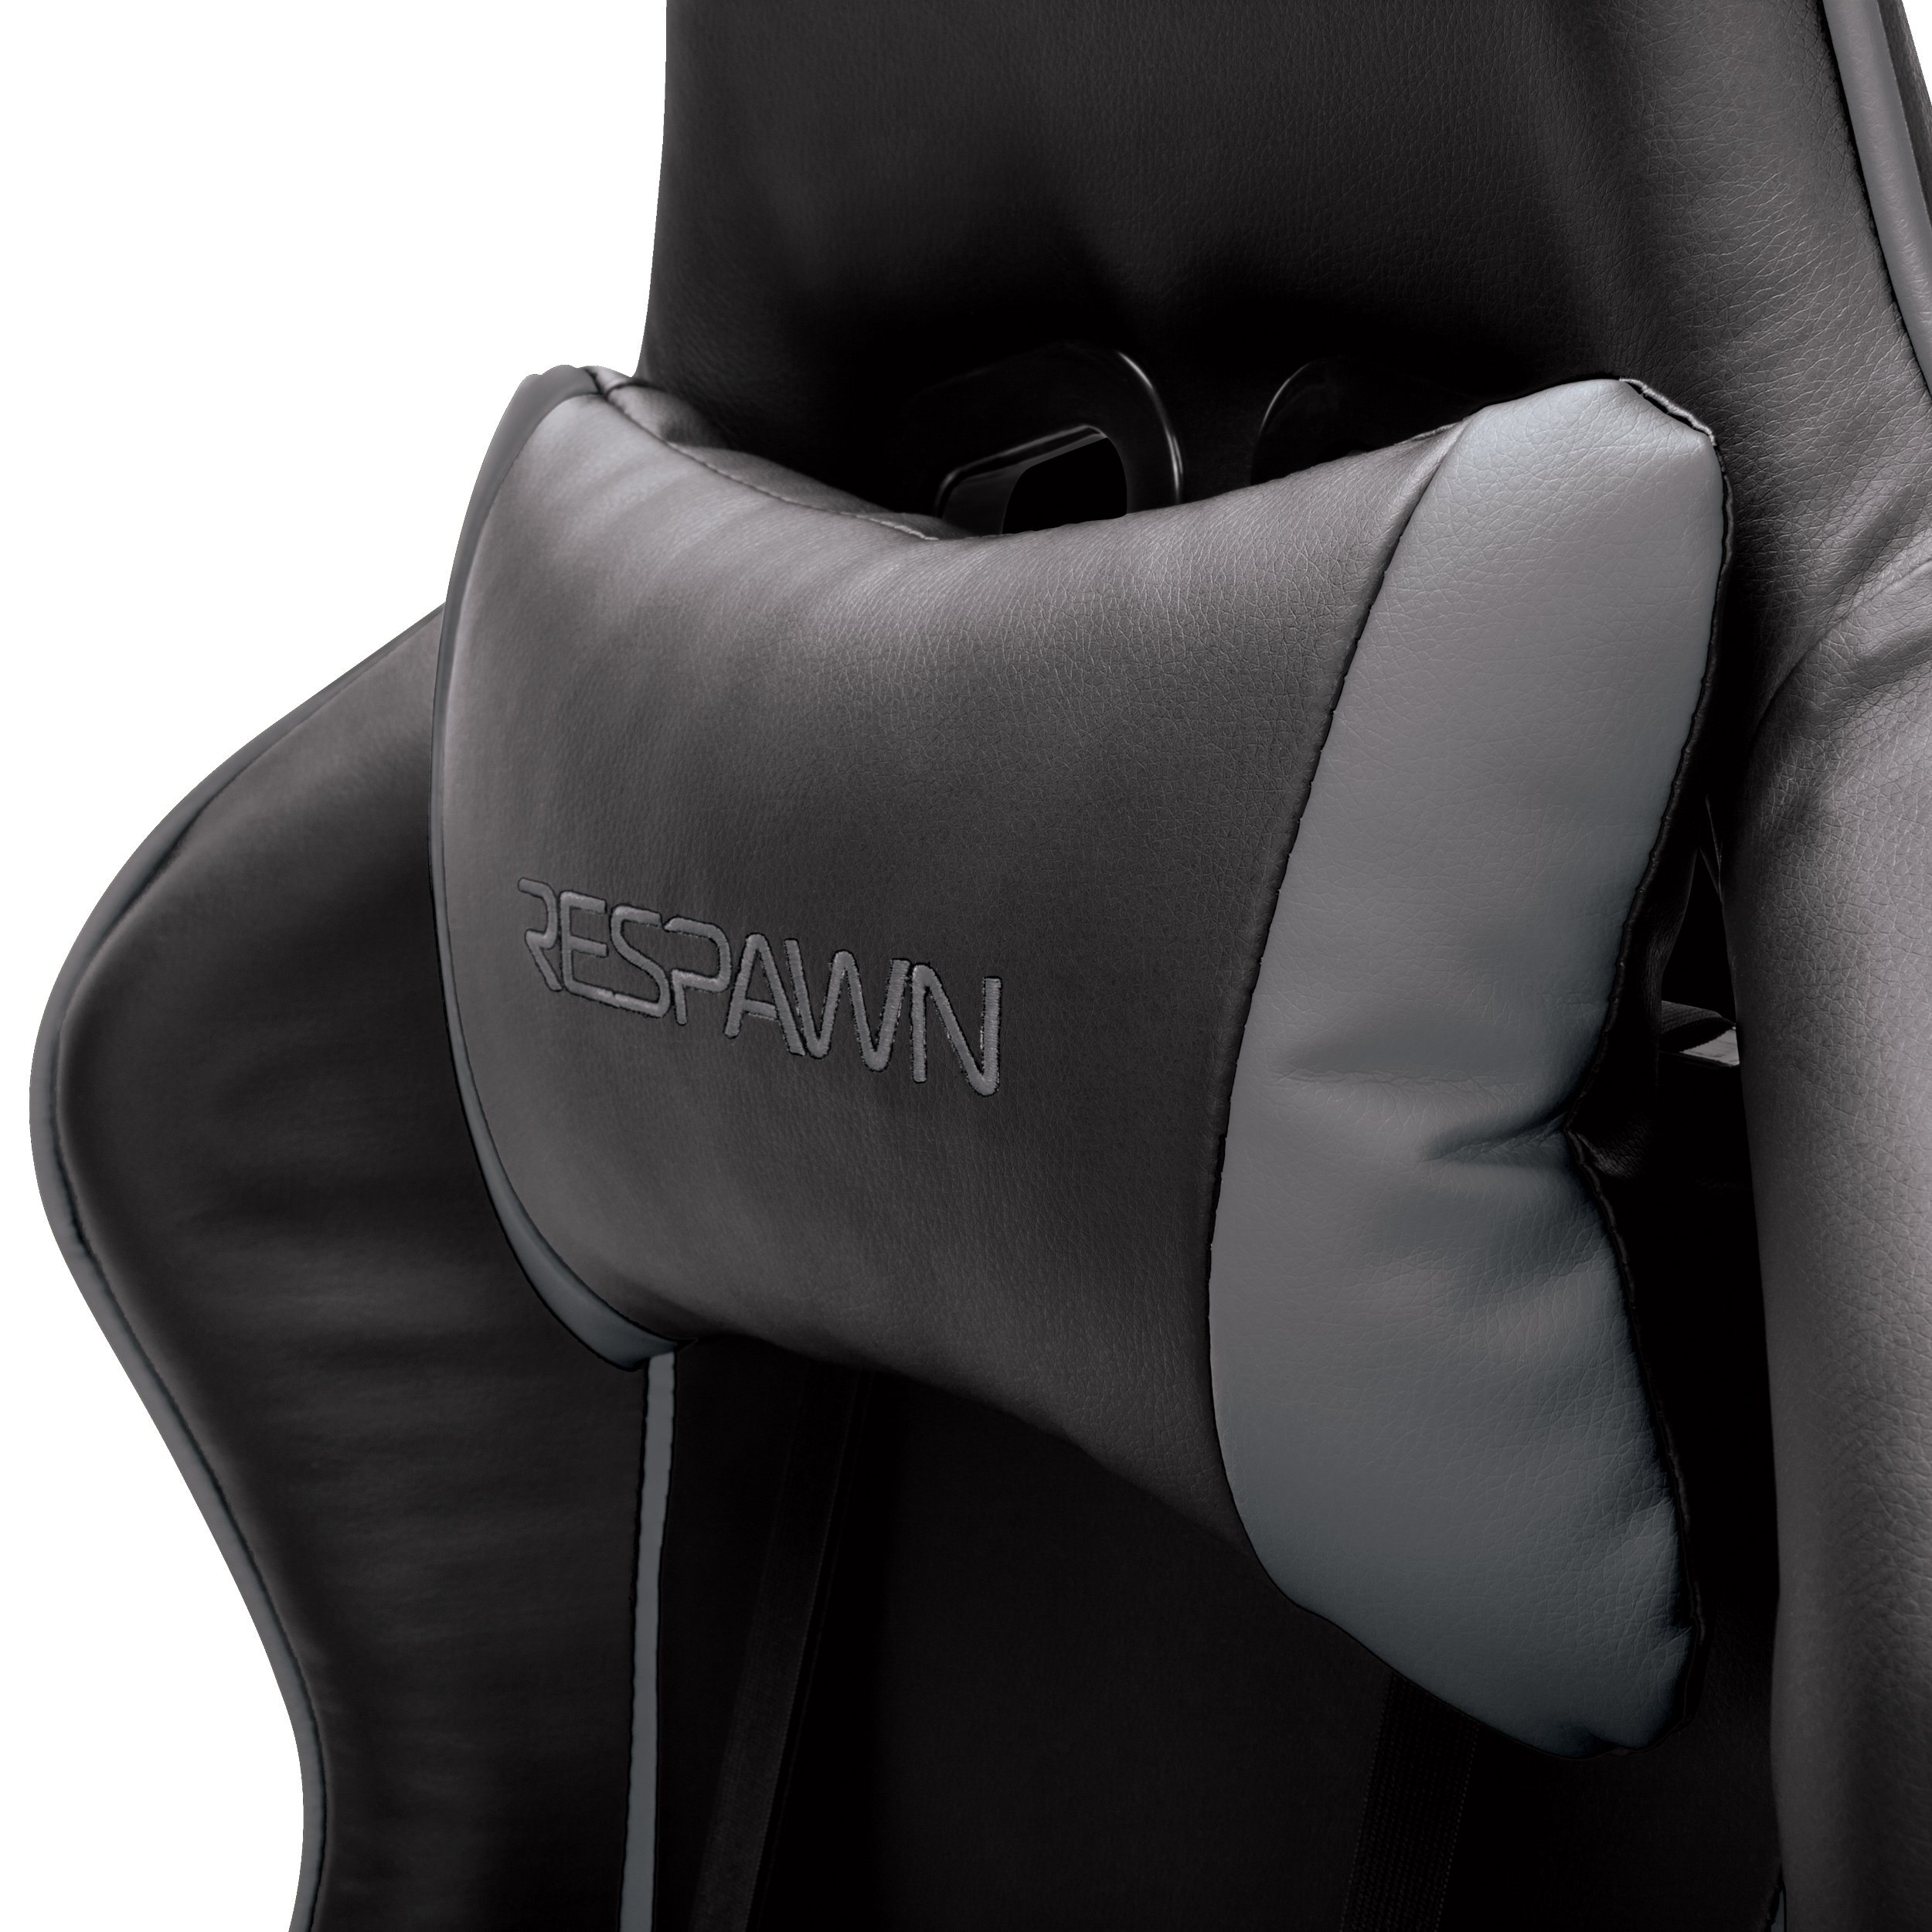 RESPAWN-105 Racing Style Gaming Chair - Reclining Ergonomic Leather Chair, Office or Gaming Chair (RSP-105-GRY) by RESPAWN (Image #4)